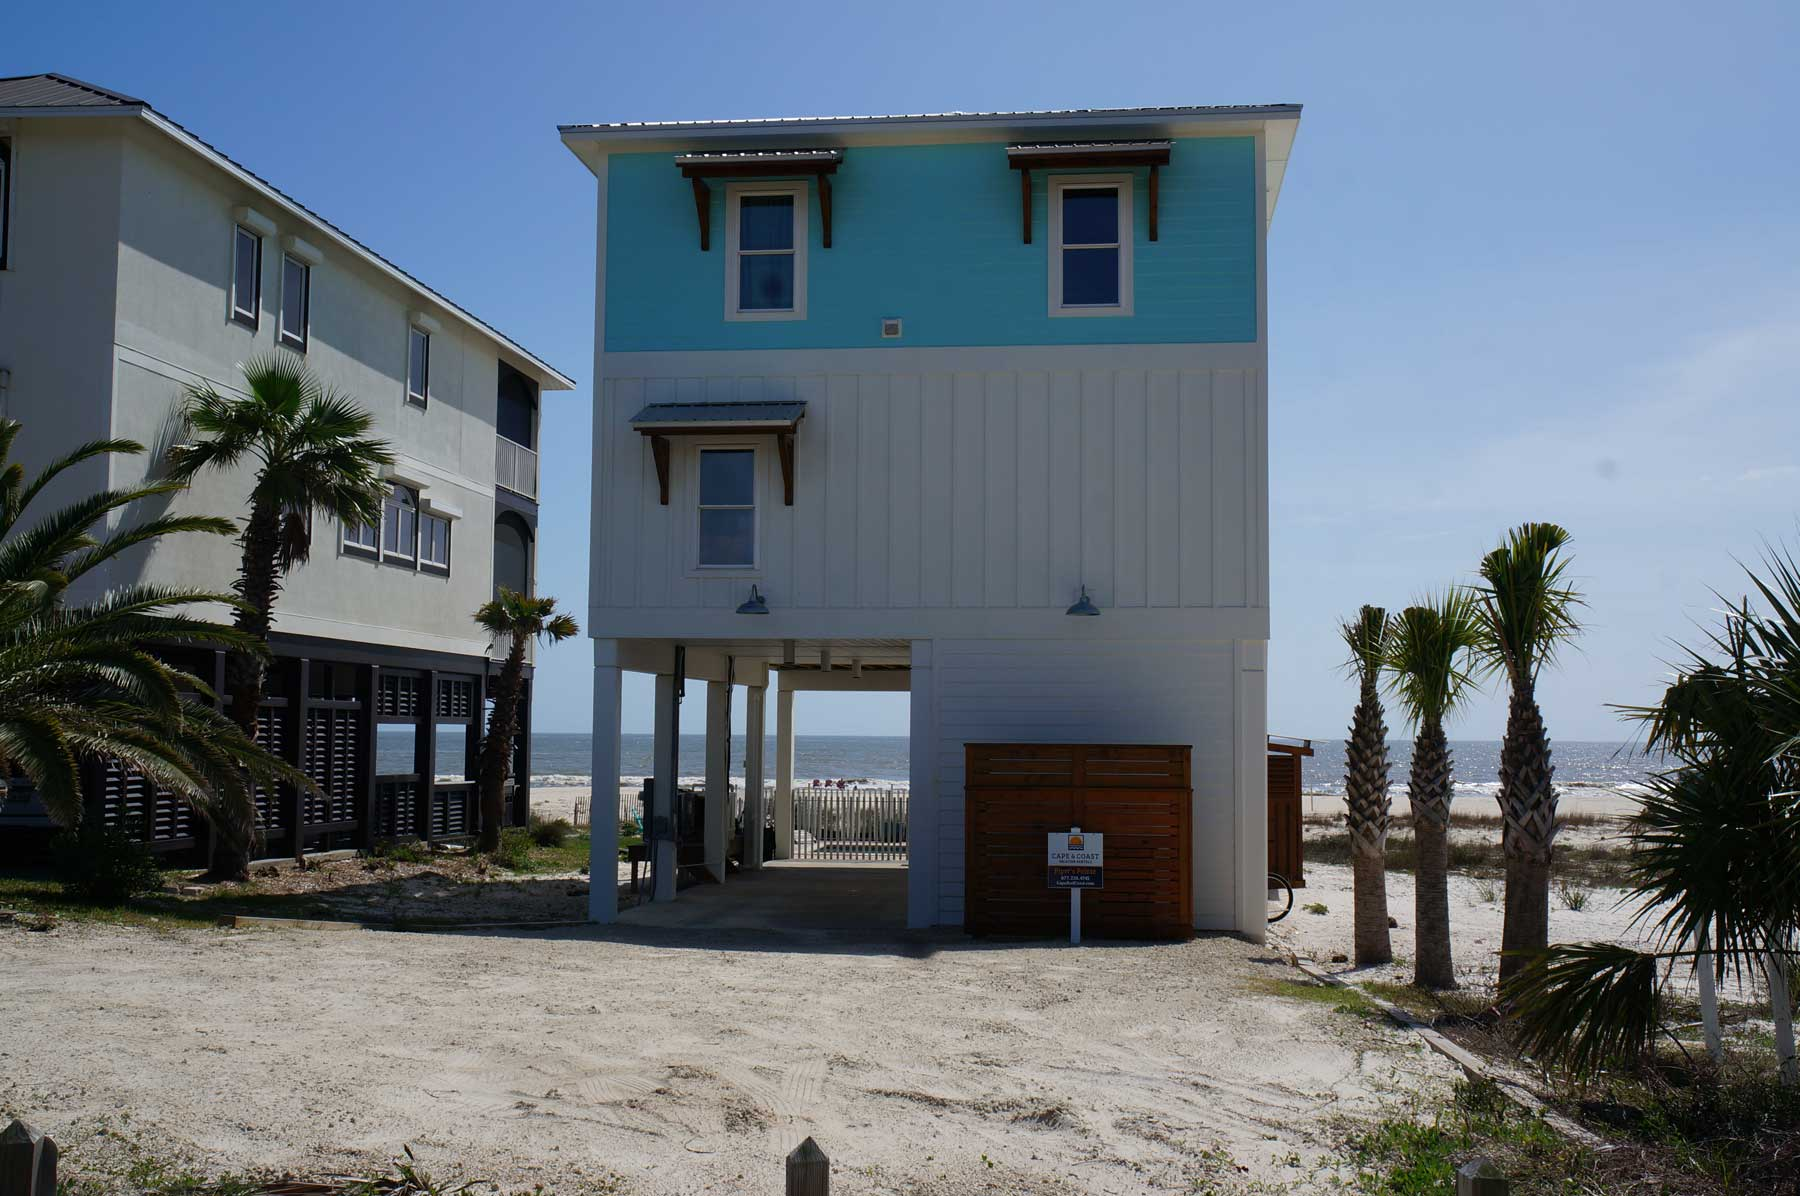 After the hurricane - a new construction waterfront home on Mexico Beach.